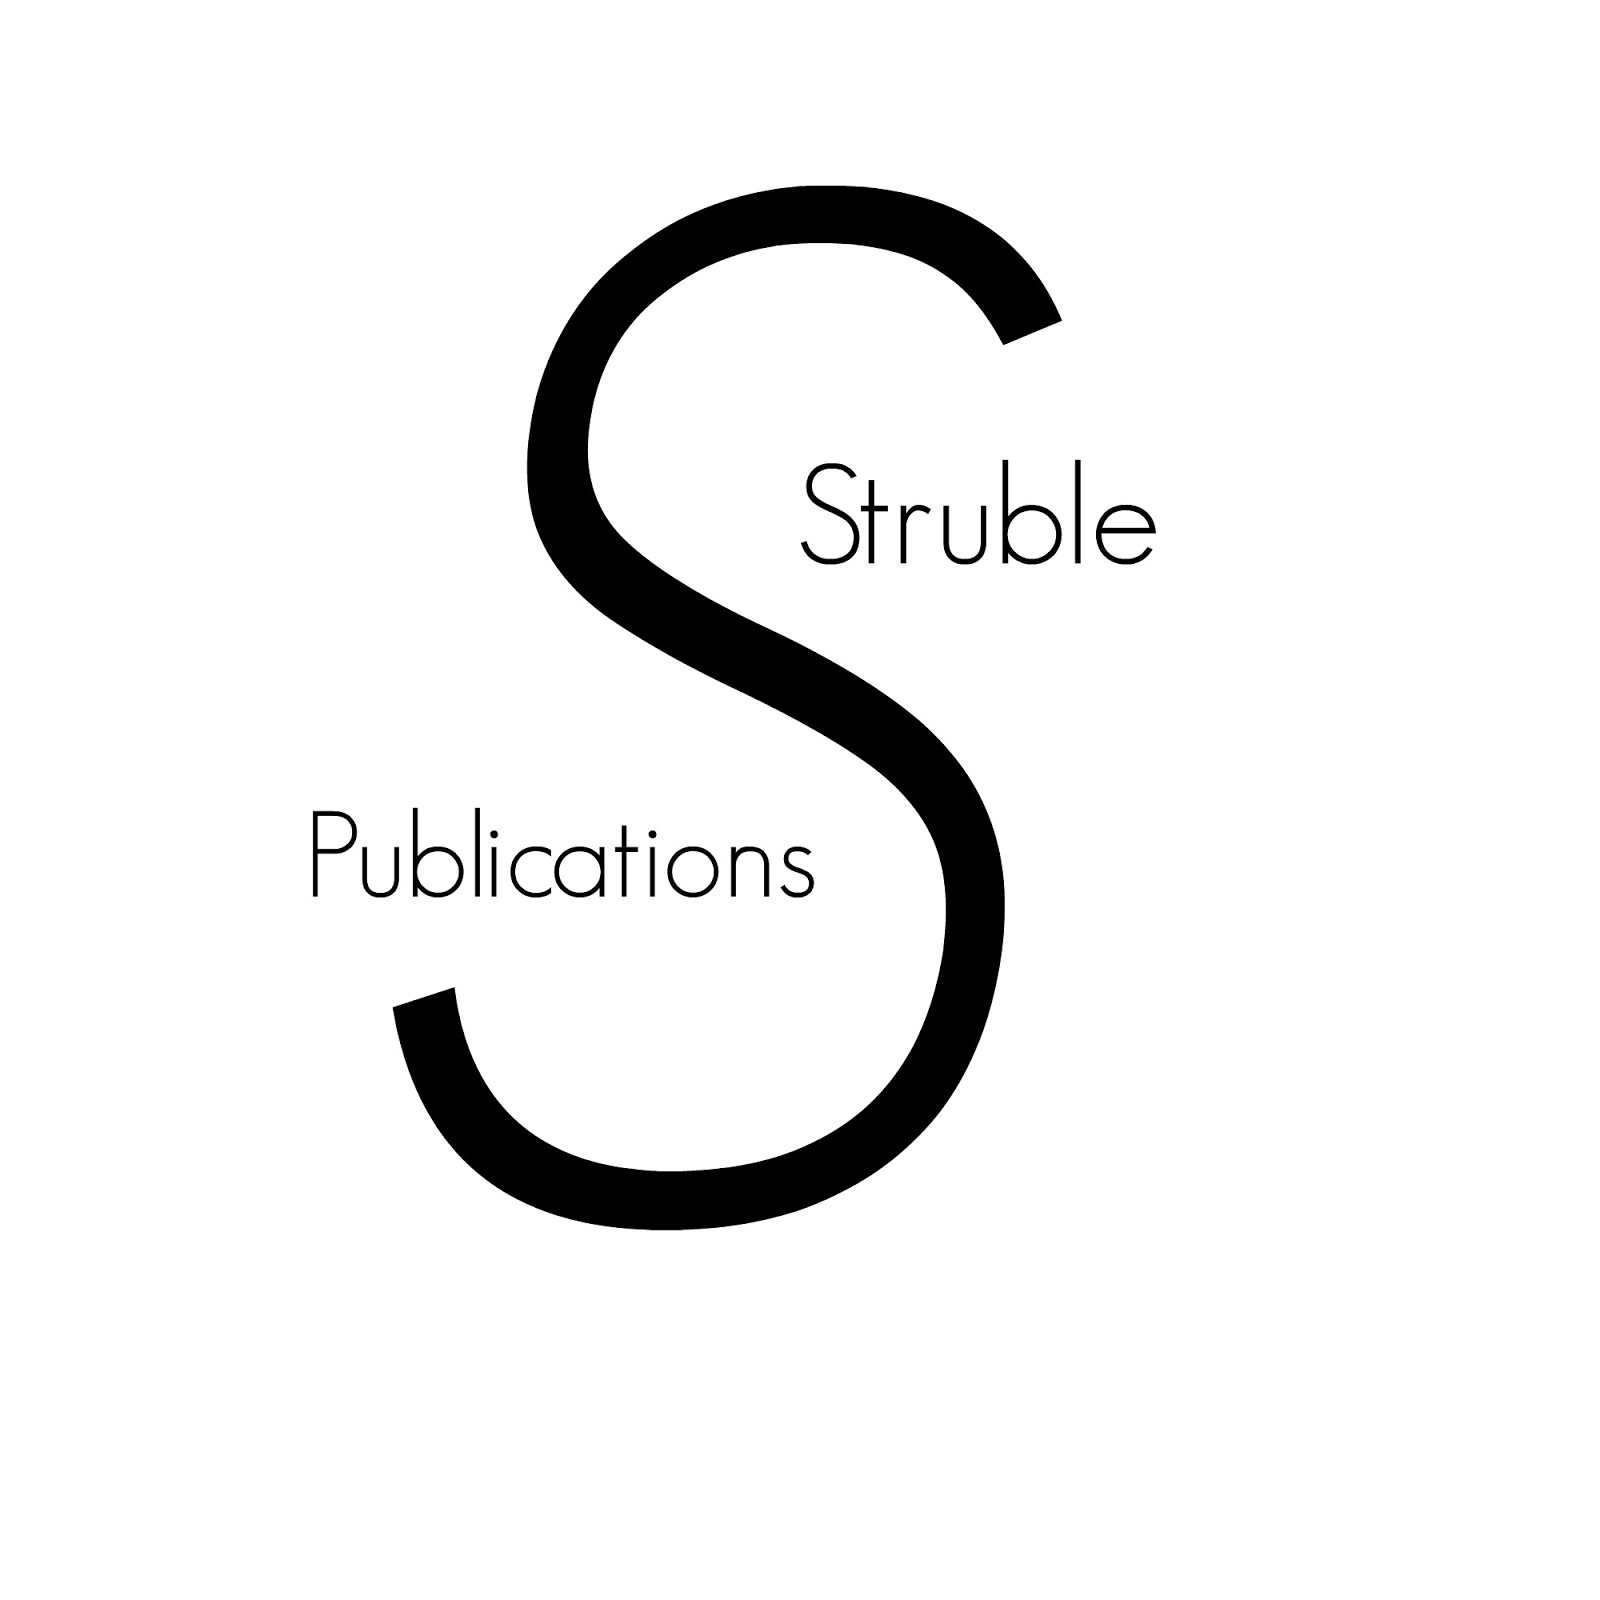 Struble Publications